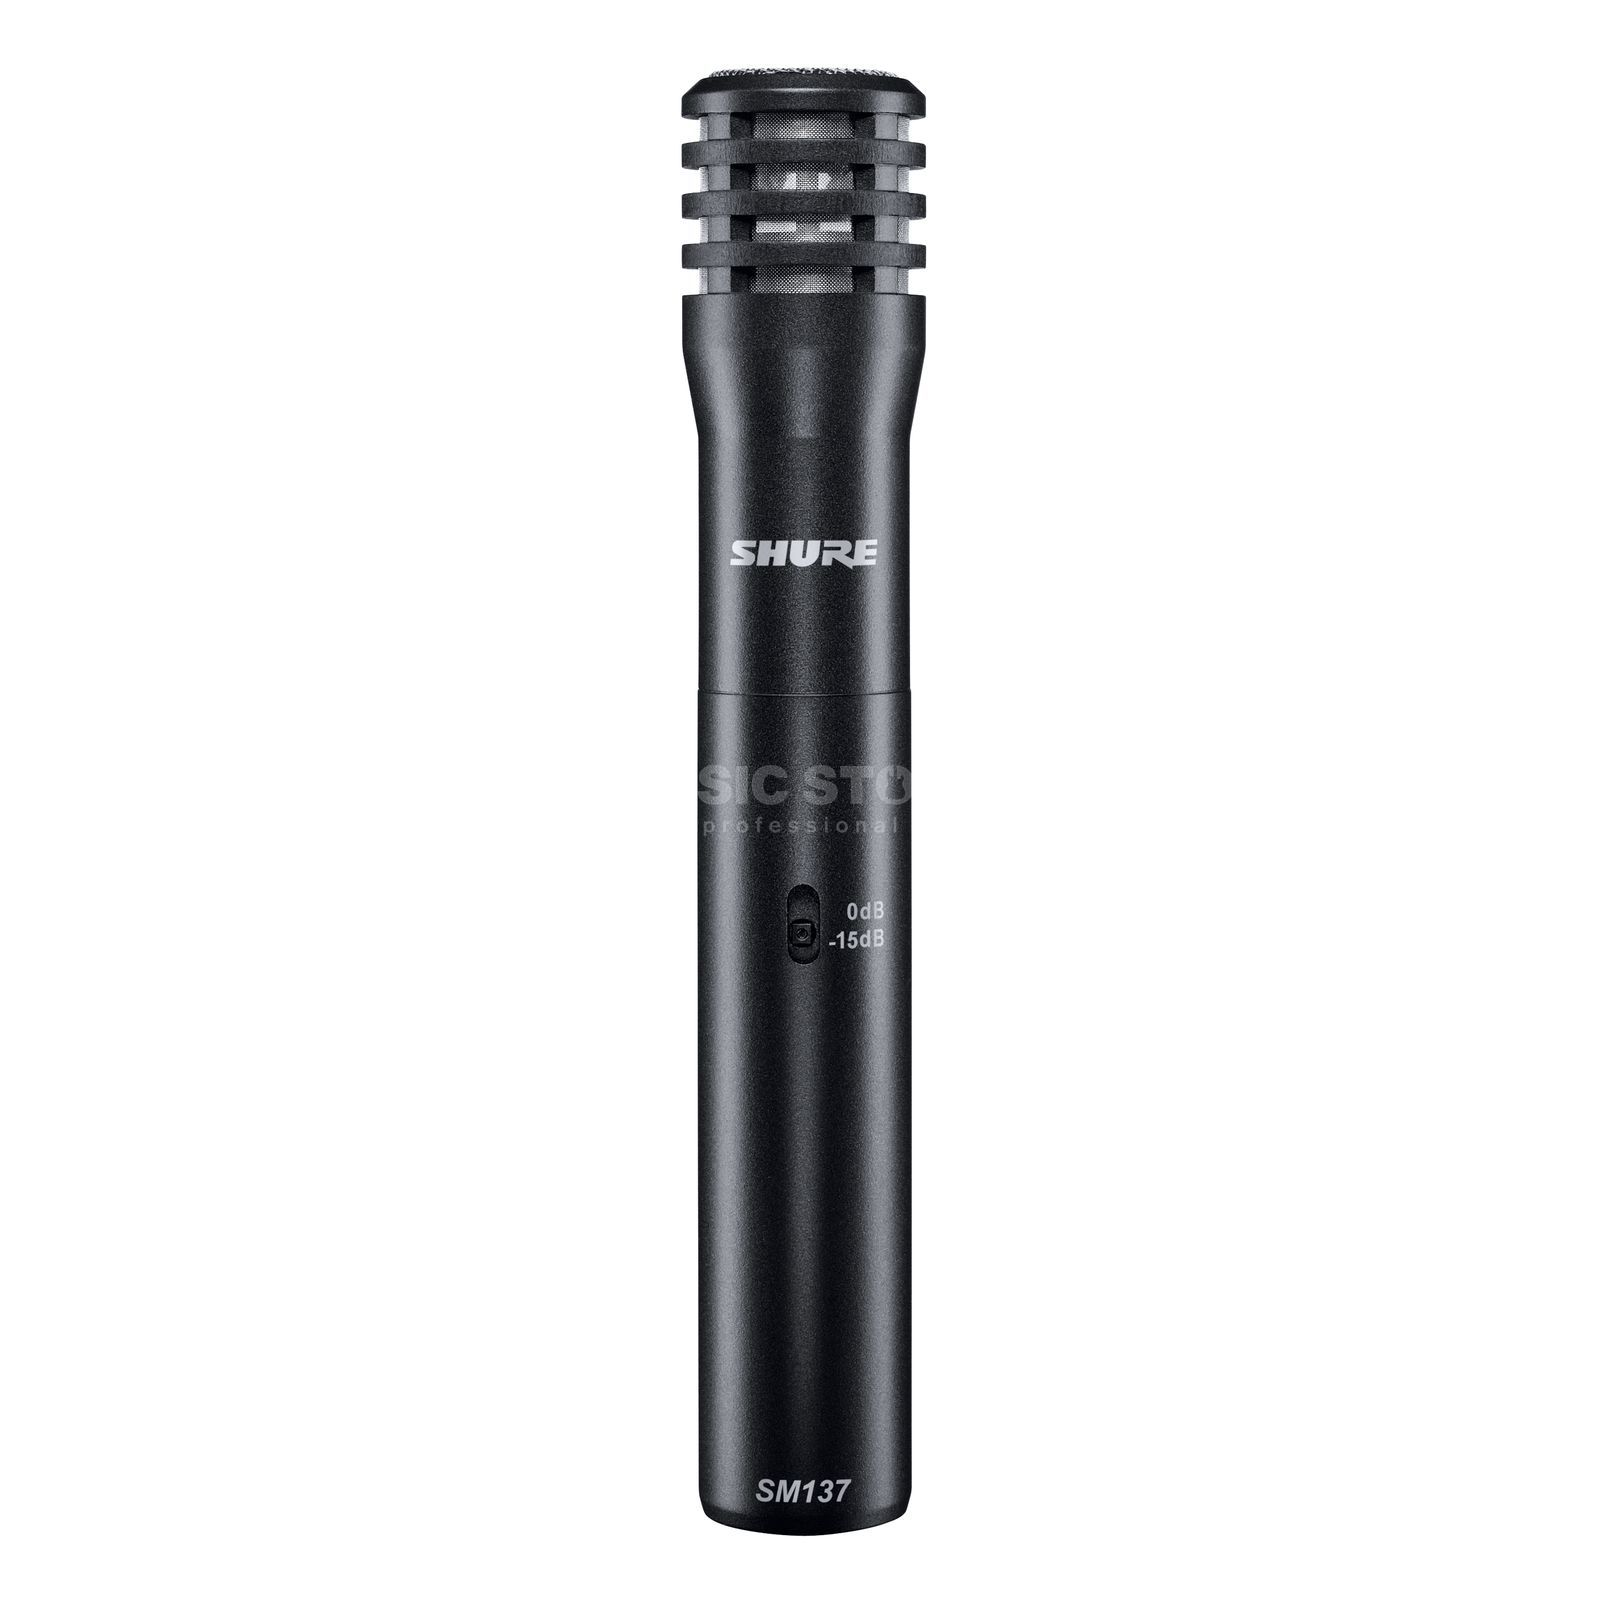 Shure SM137-LC Small Membrane Microphone Condenser, Cardioid Zdjęcie produktu